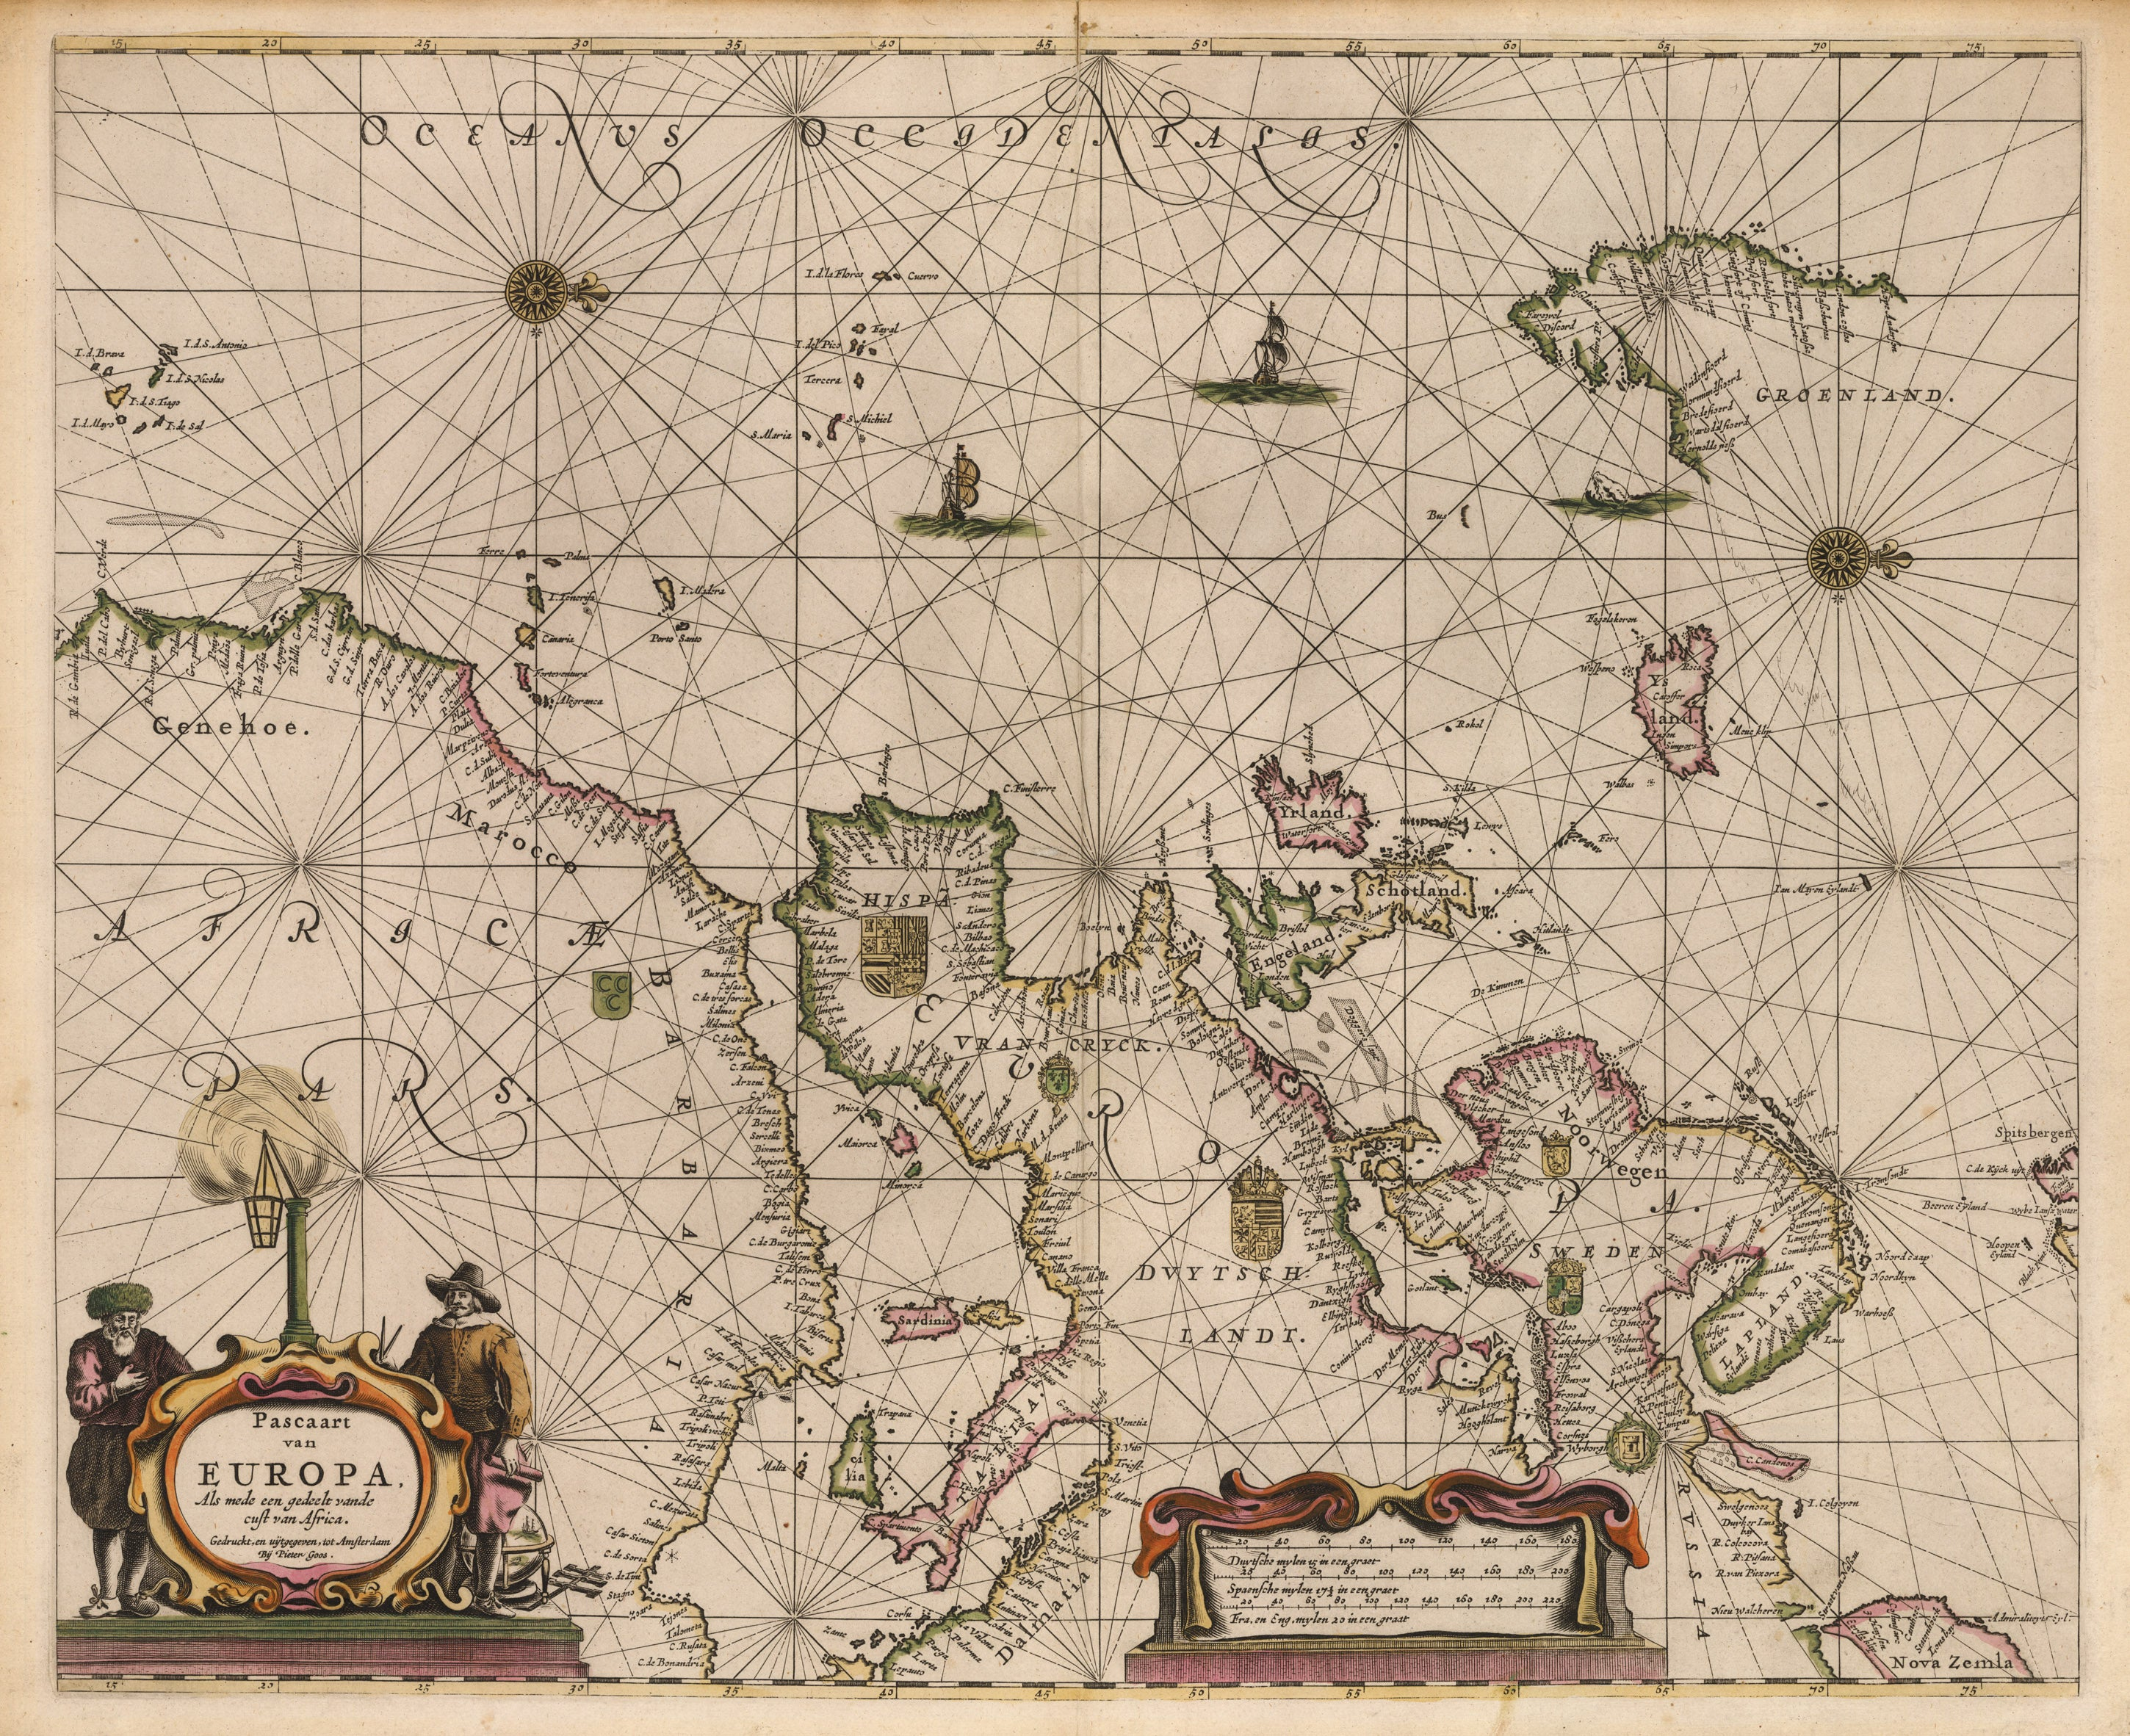 Antique Nautical Map : Pascaart van Europa, Als mede een gedeelt vande cust von Africa. by Goos, 1666